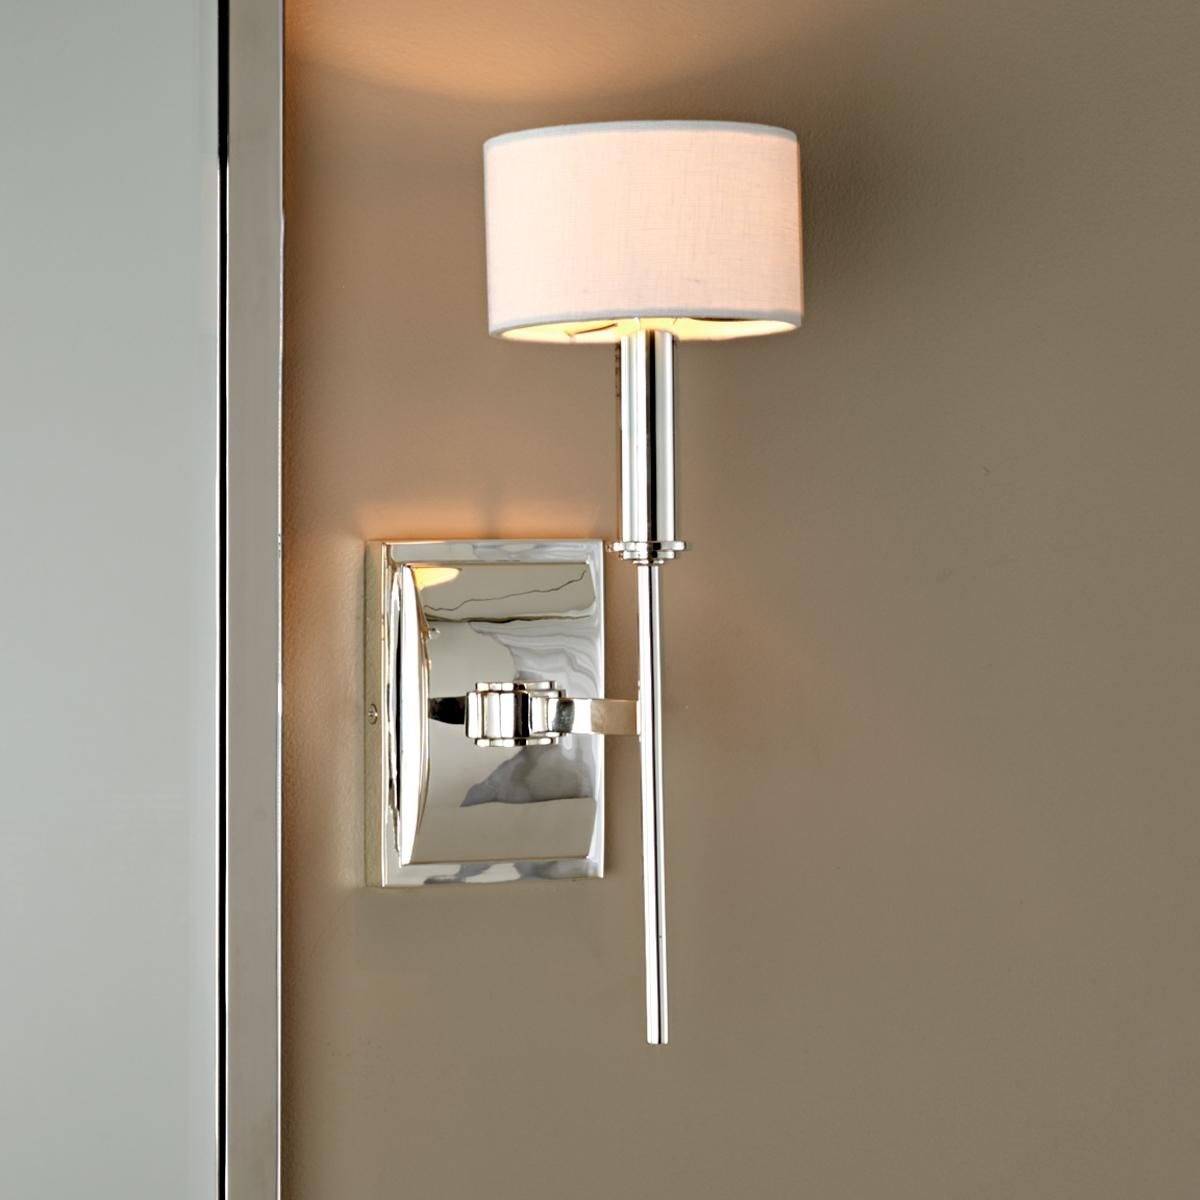 Bathroom wall sconces with shades - Master Bath Sconce Modern Pencil Arm Sconce Two Finishes Modern Wall Sconces Shades Of Light